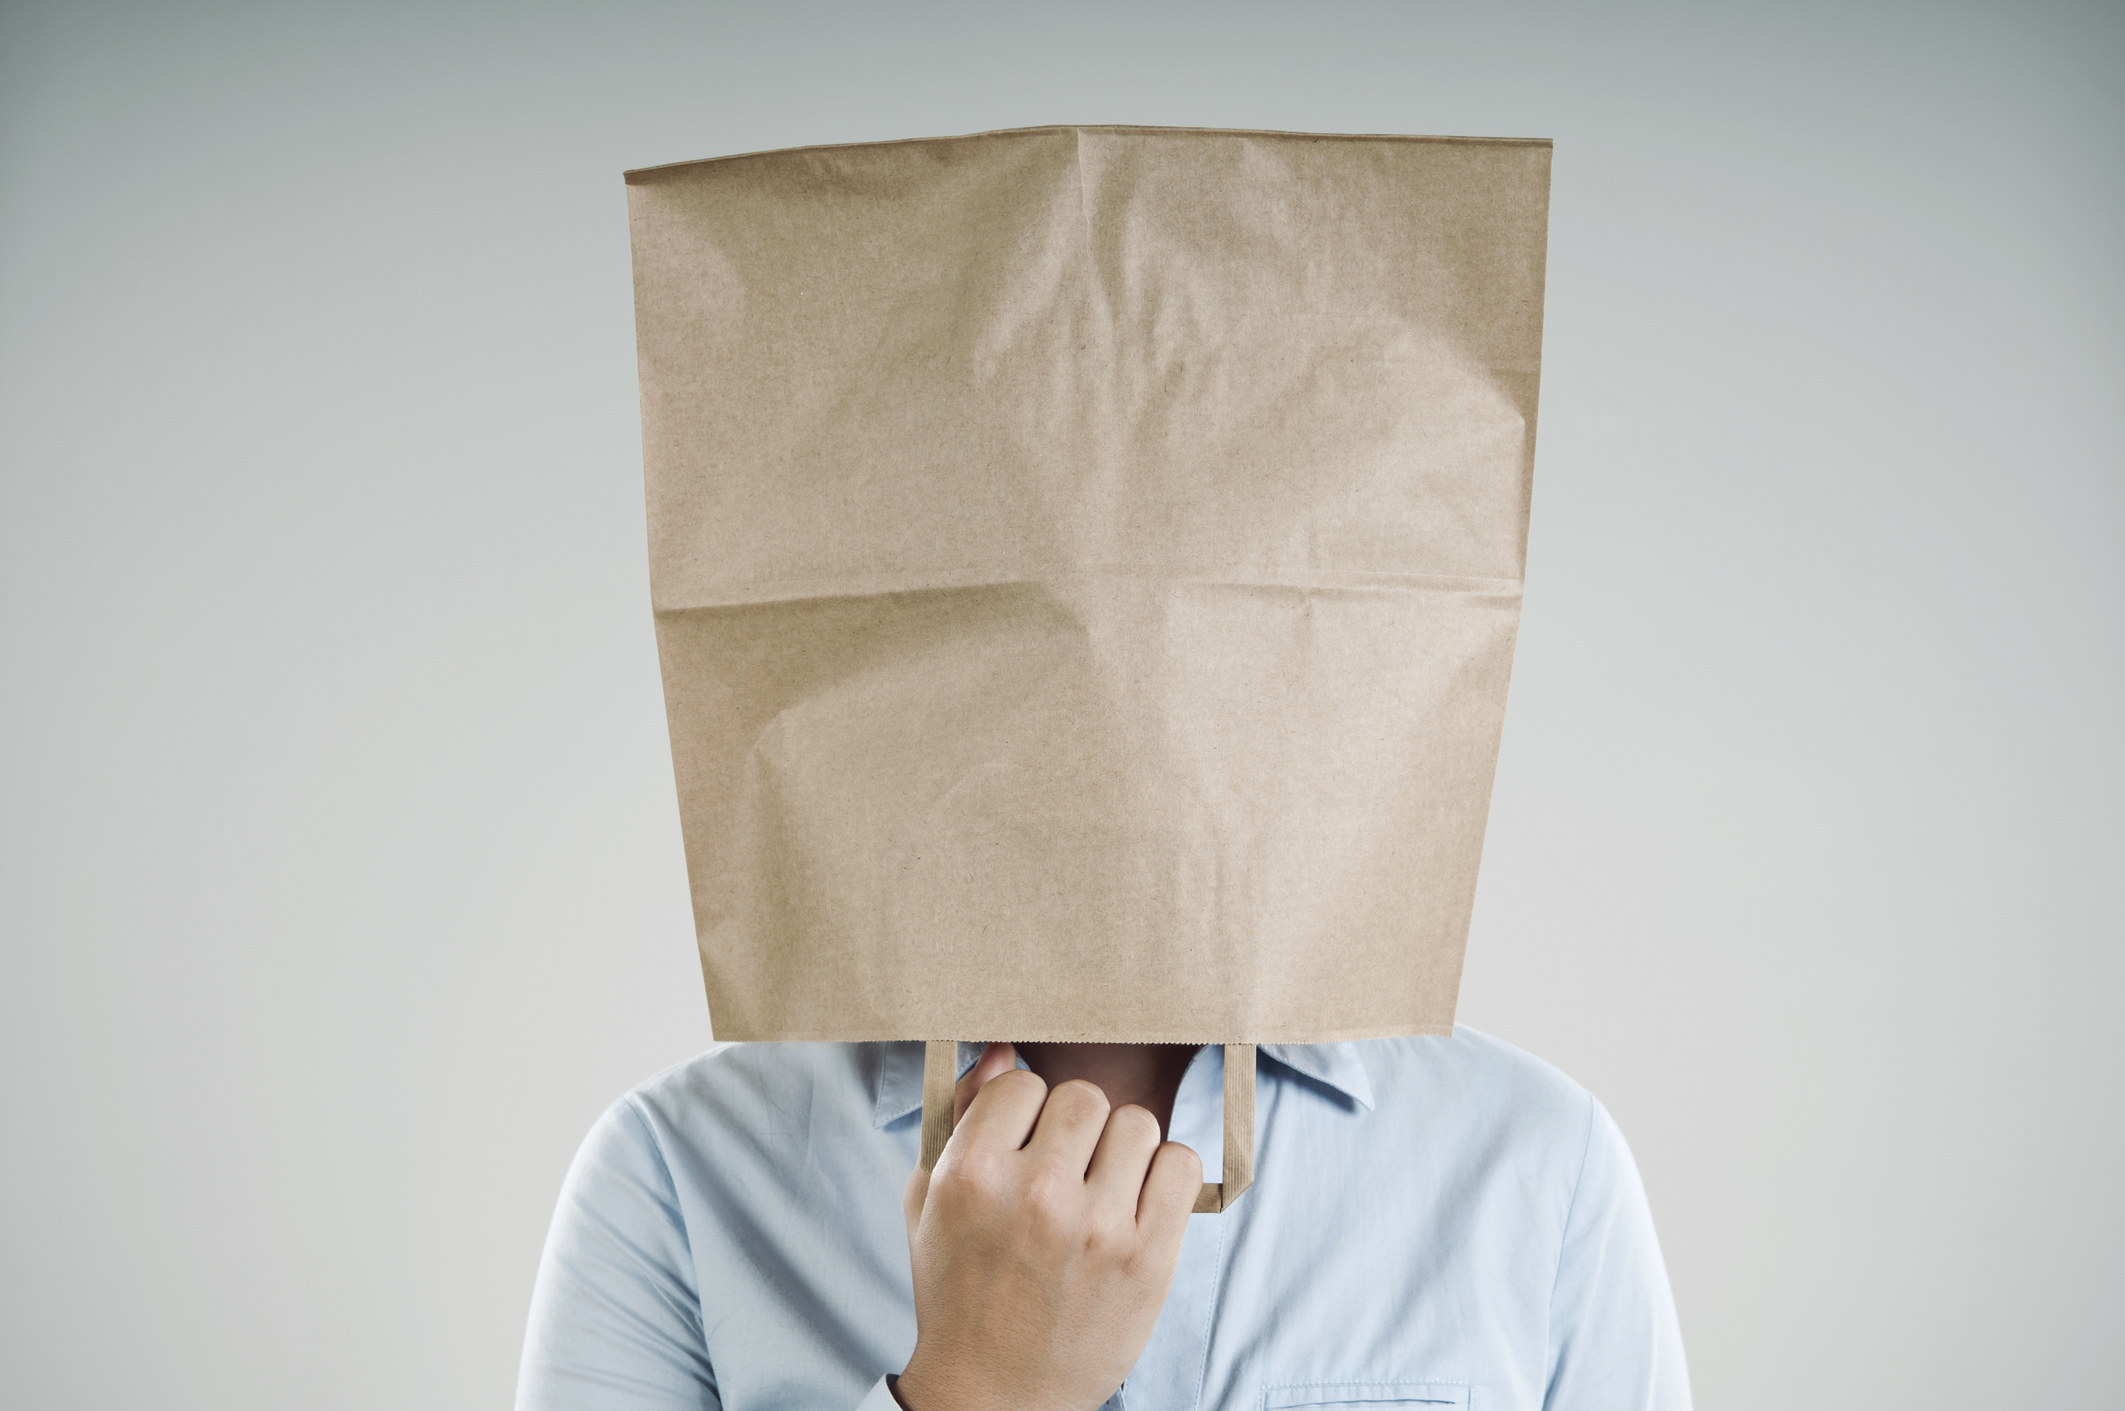 Someone wears a paper bag over their head